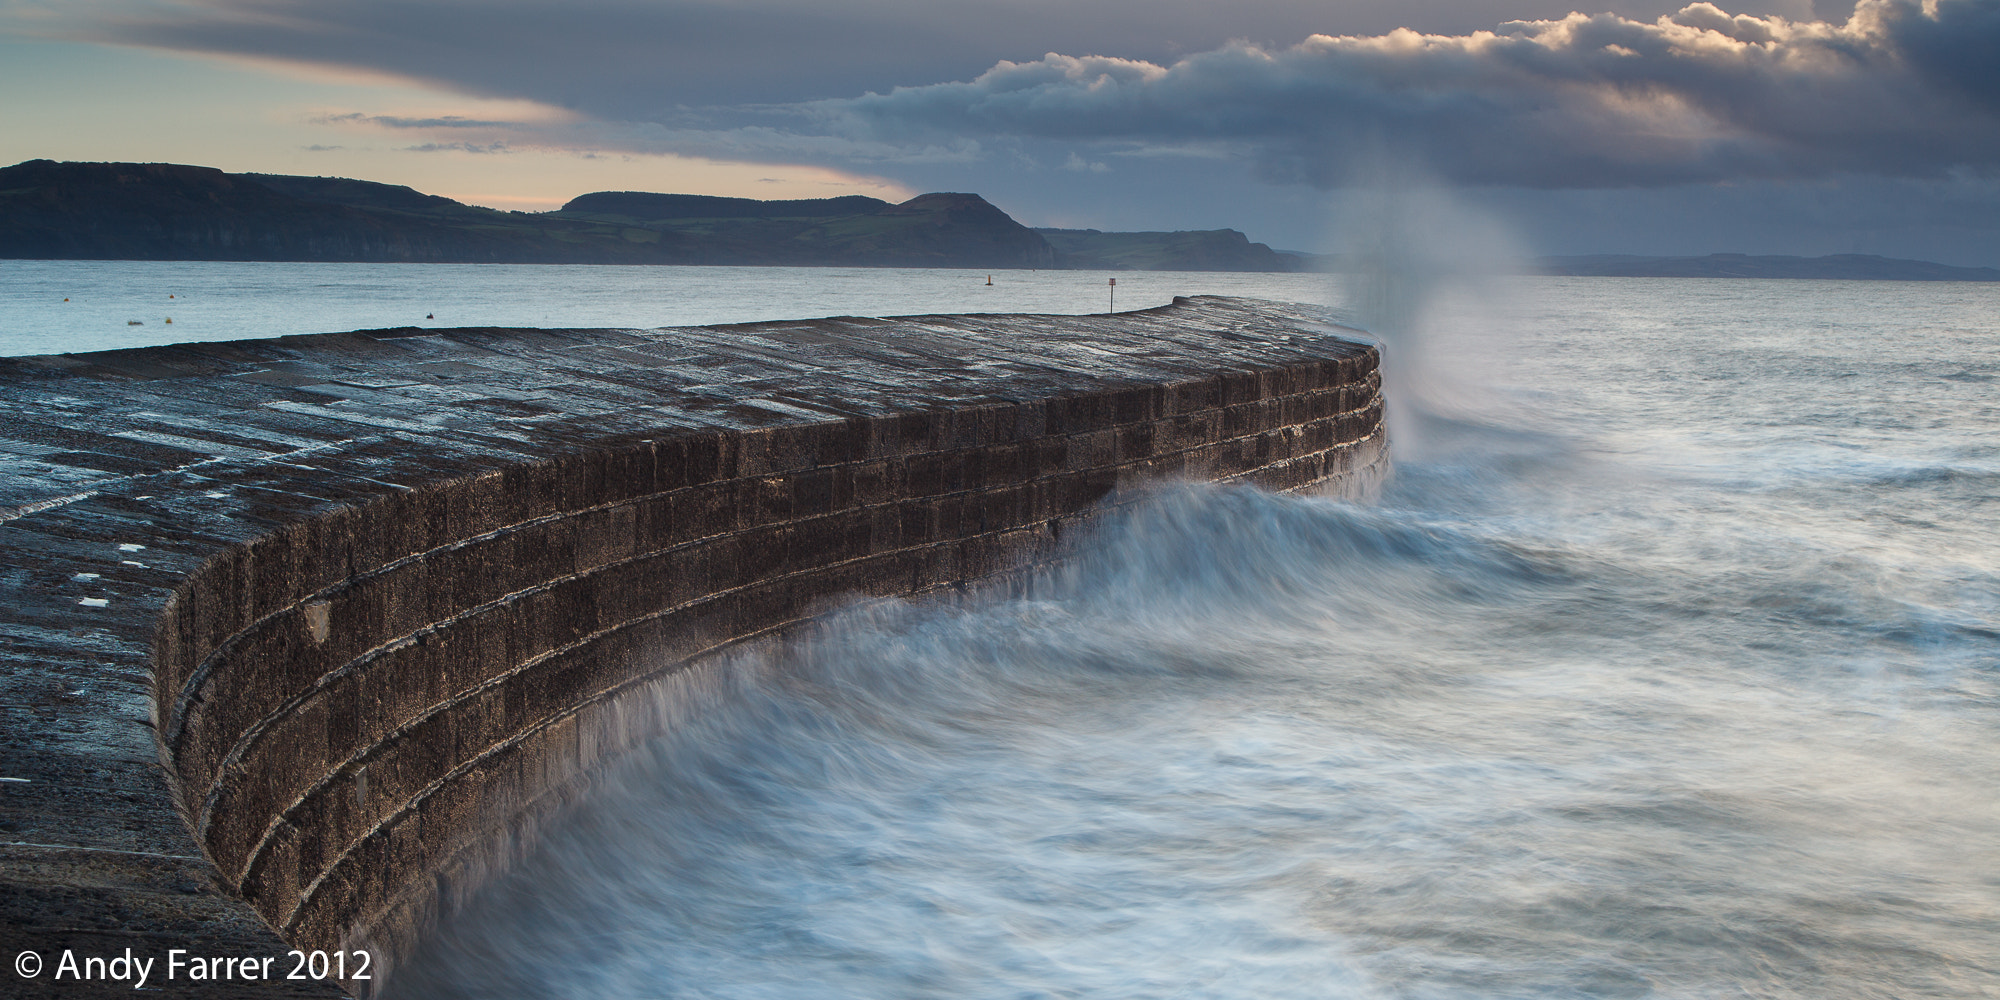 Photograph The Cobb at Lyme by Andy Farrer on 500px